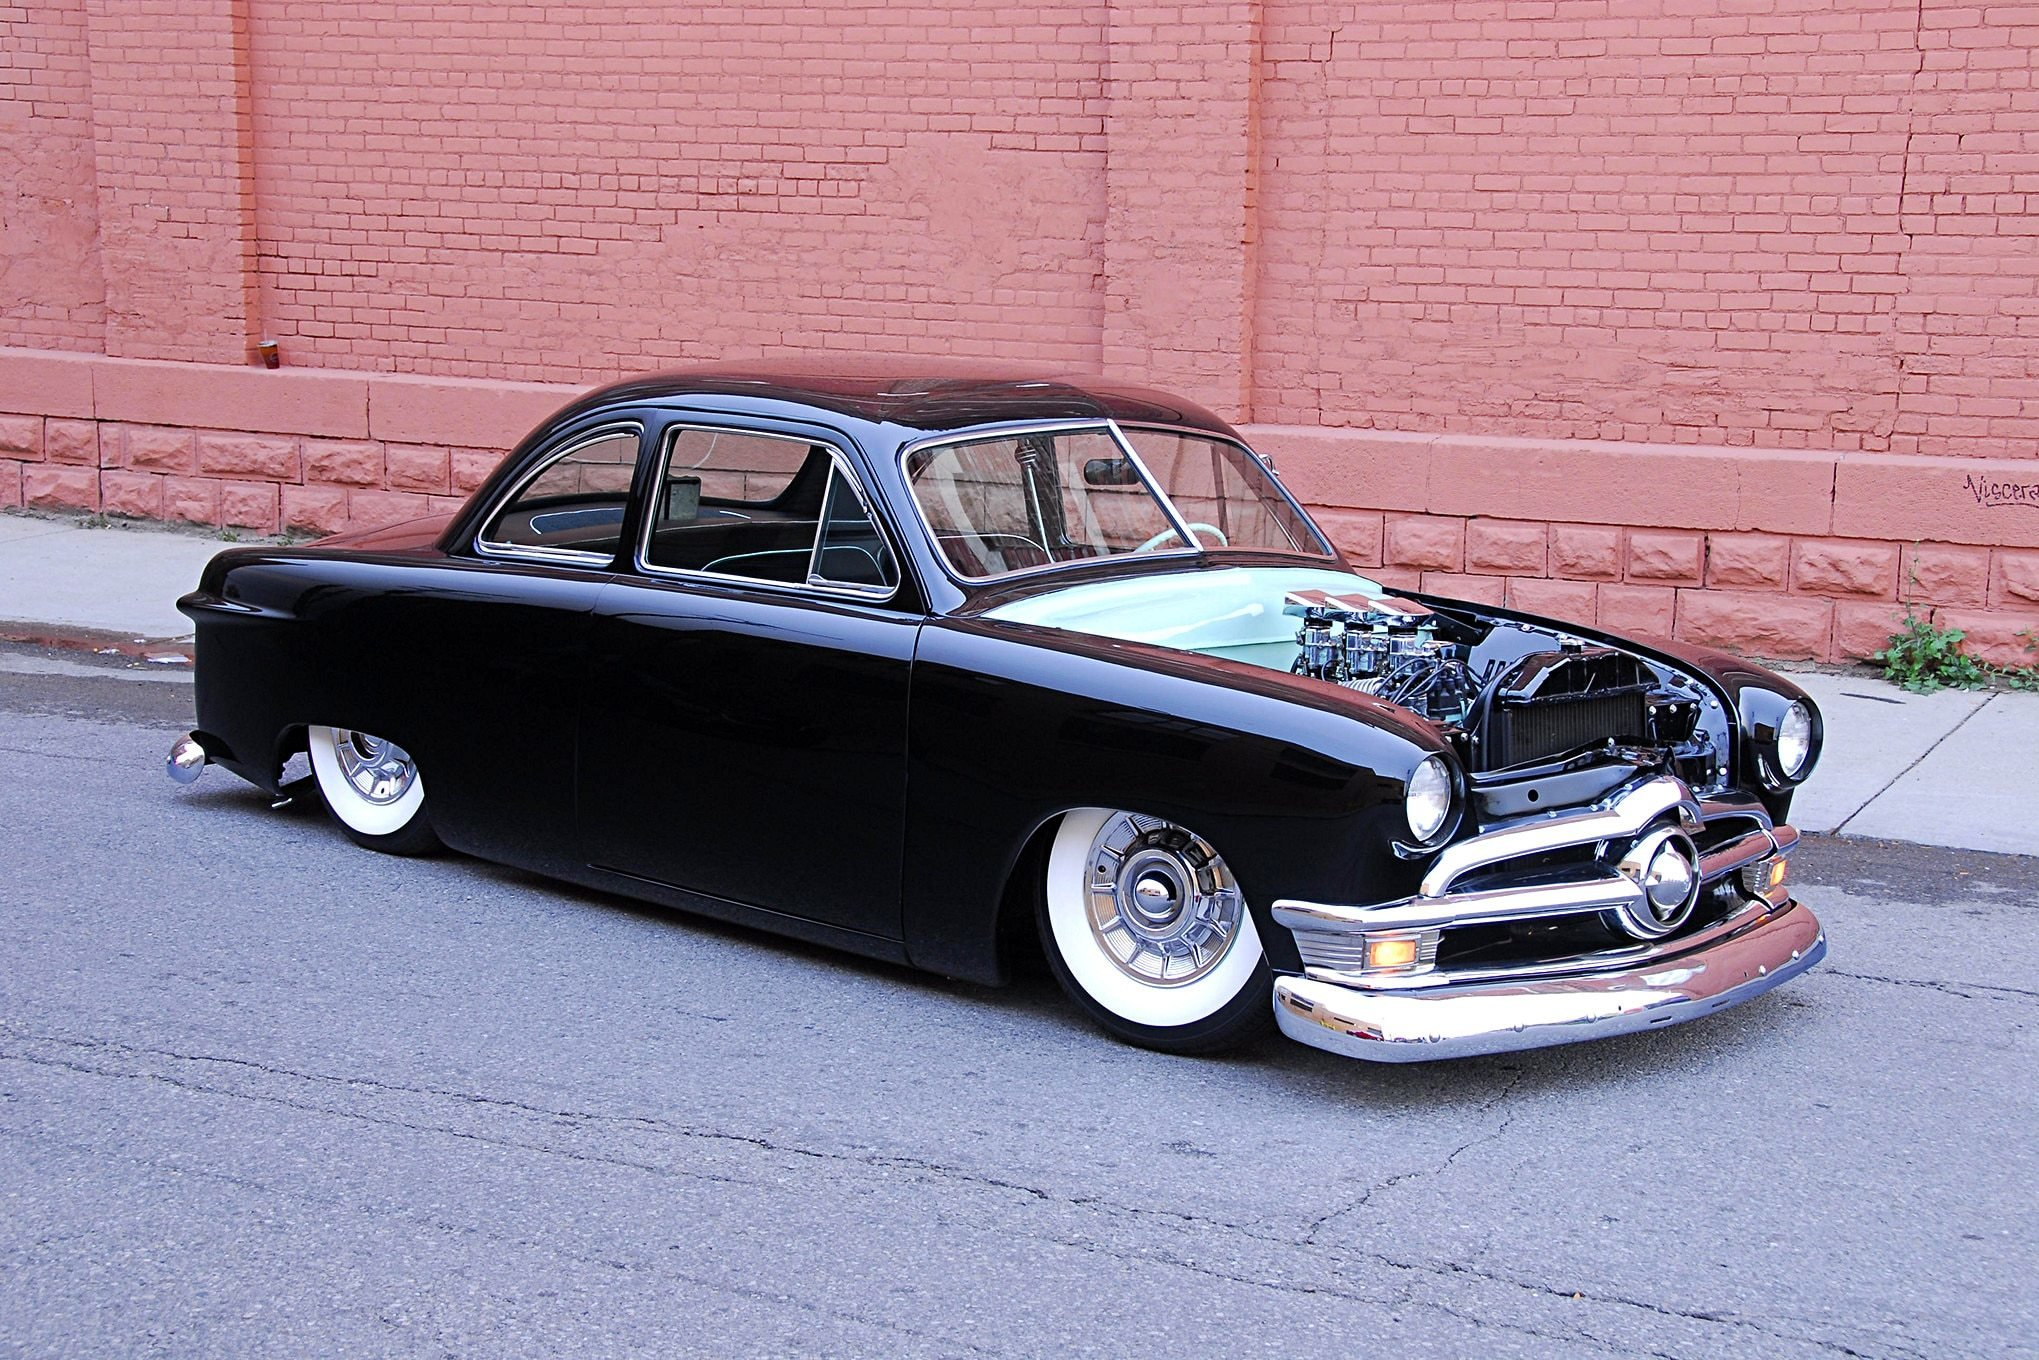 Latest This Mild Custom 1950 Ford Custom Coupe Has Plenty Of Free Download Original 1024 x 768